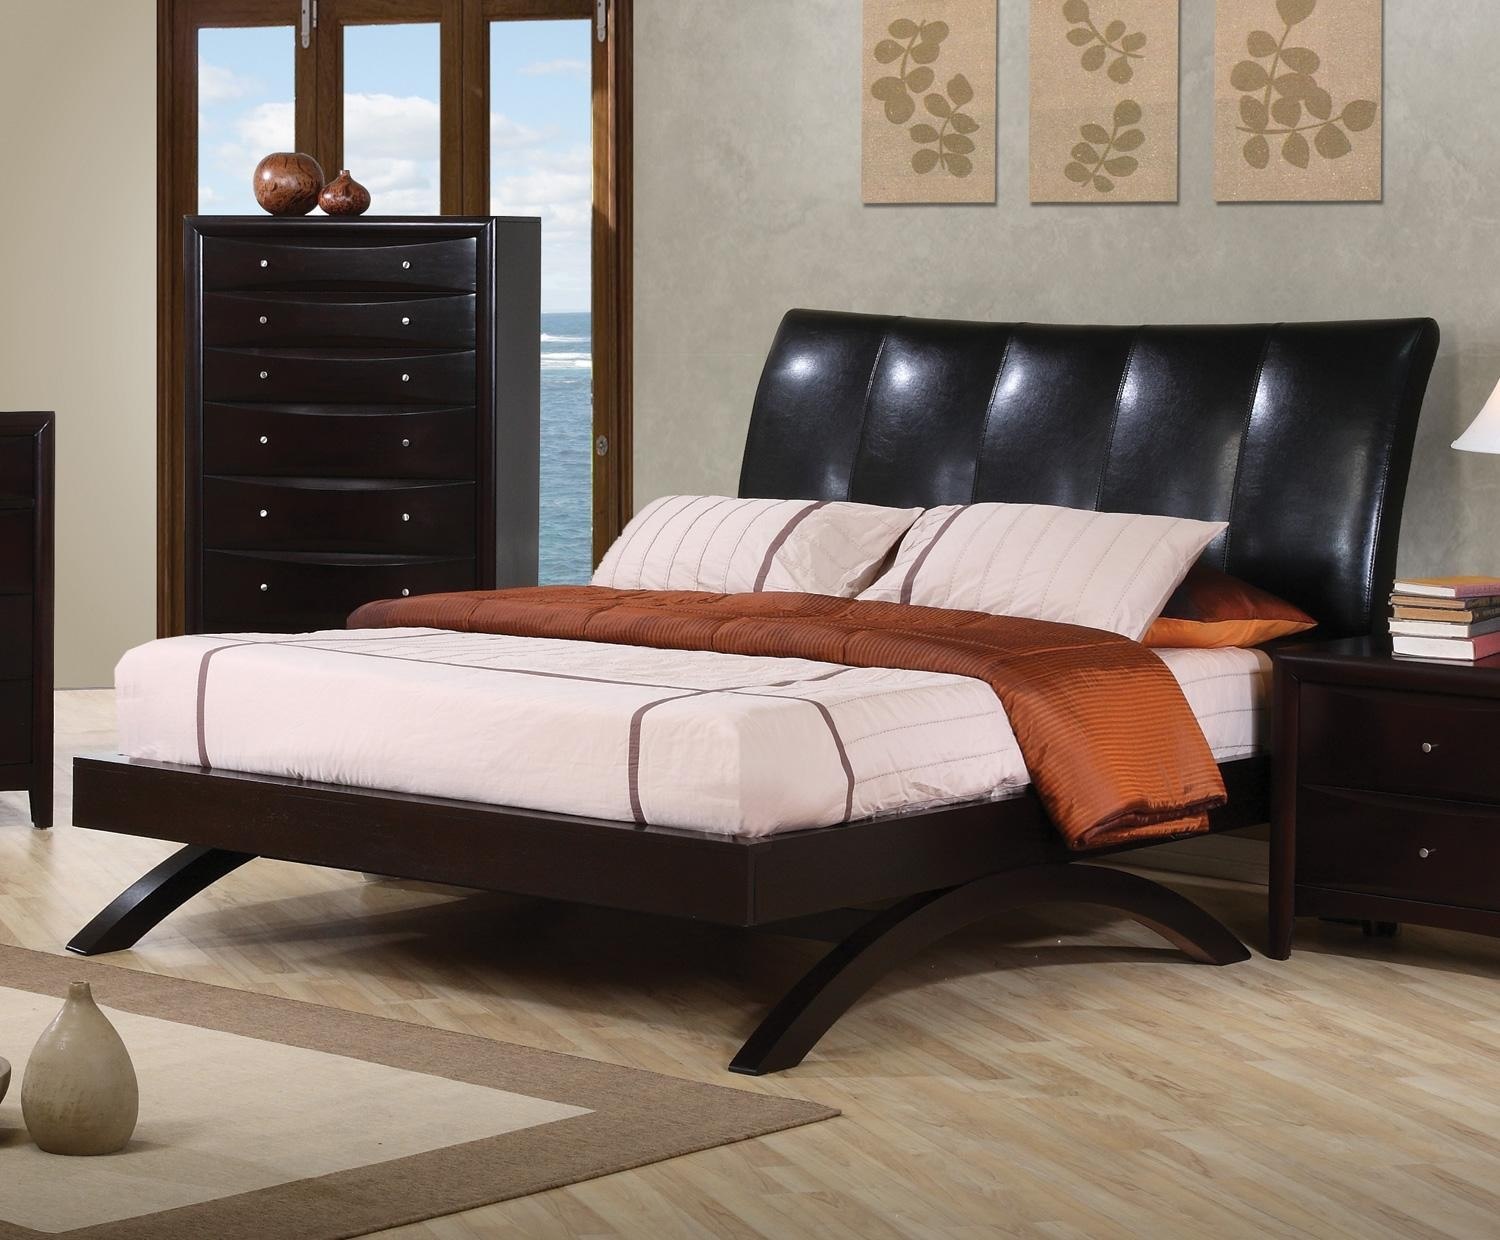 Phoenix Queen Upholstered Platform Bed 300356 From Coaster 300356 Colem